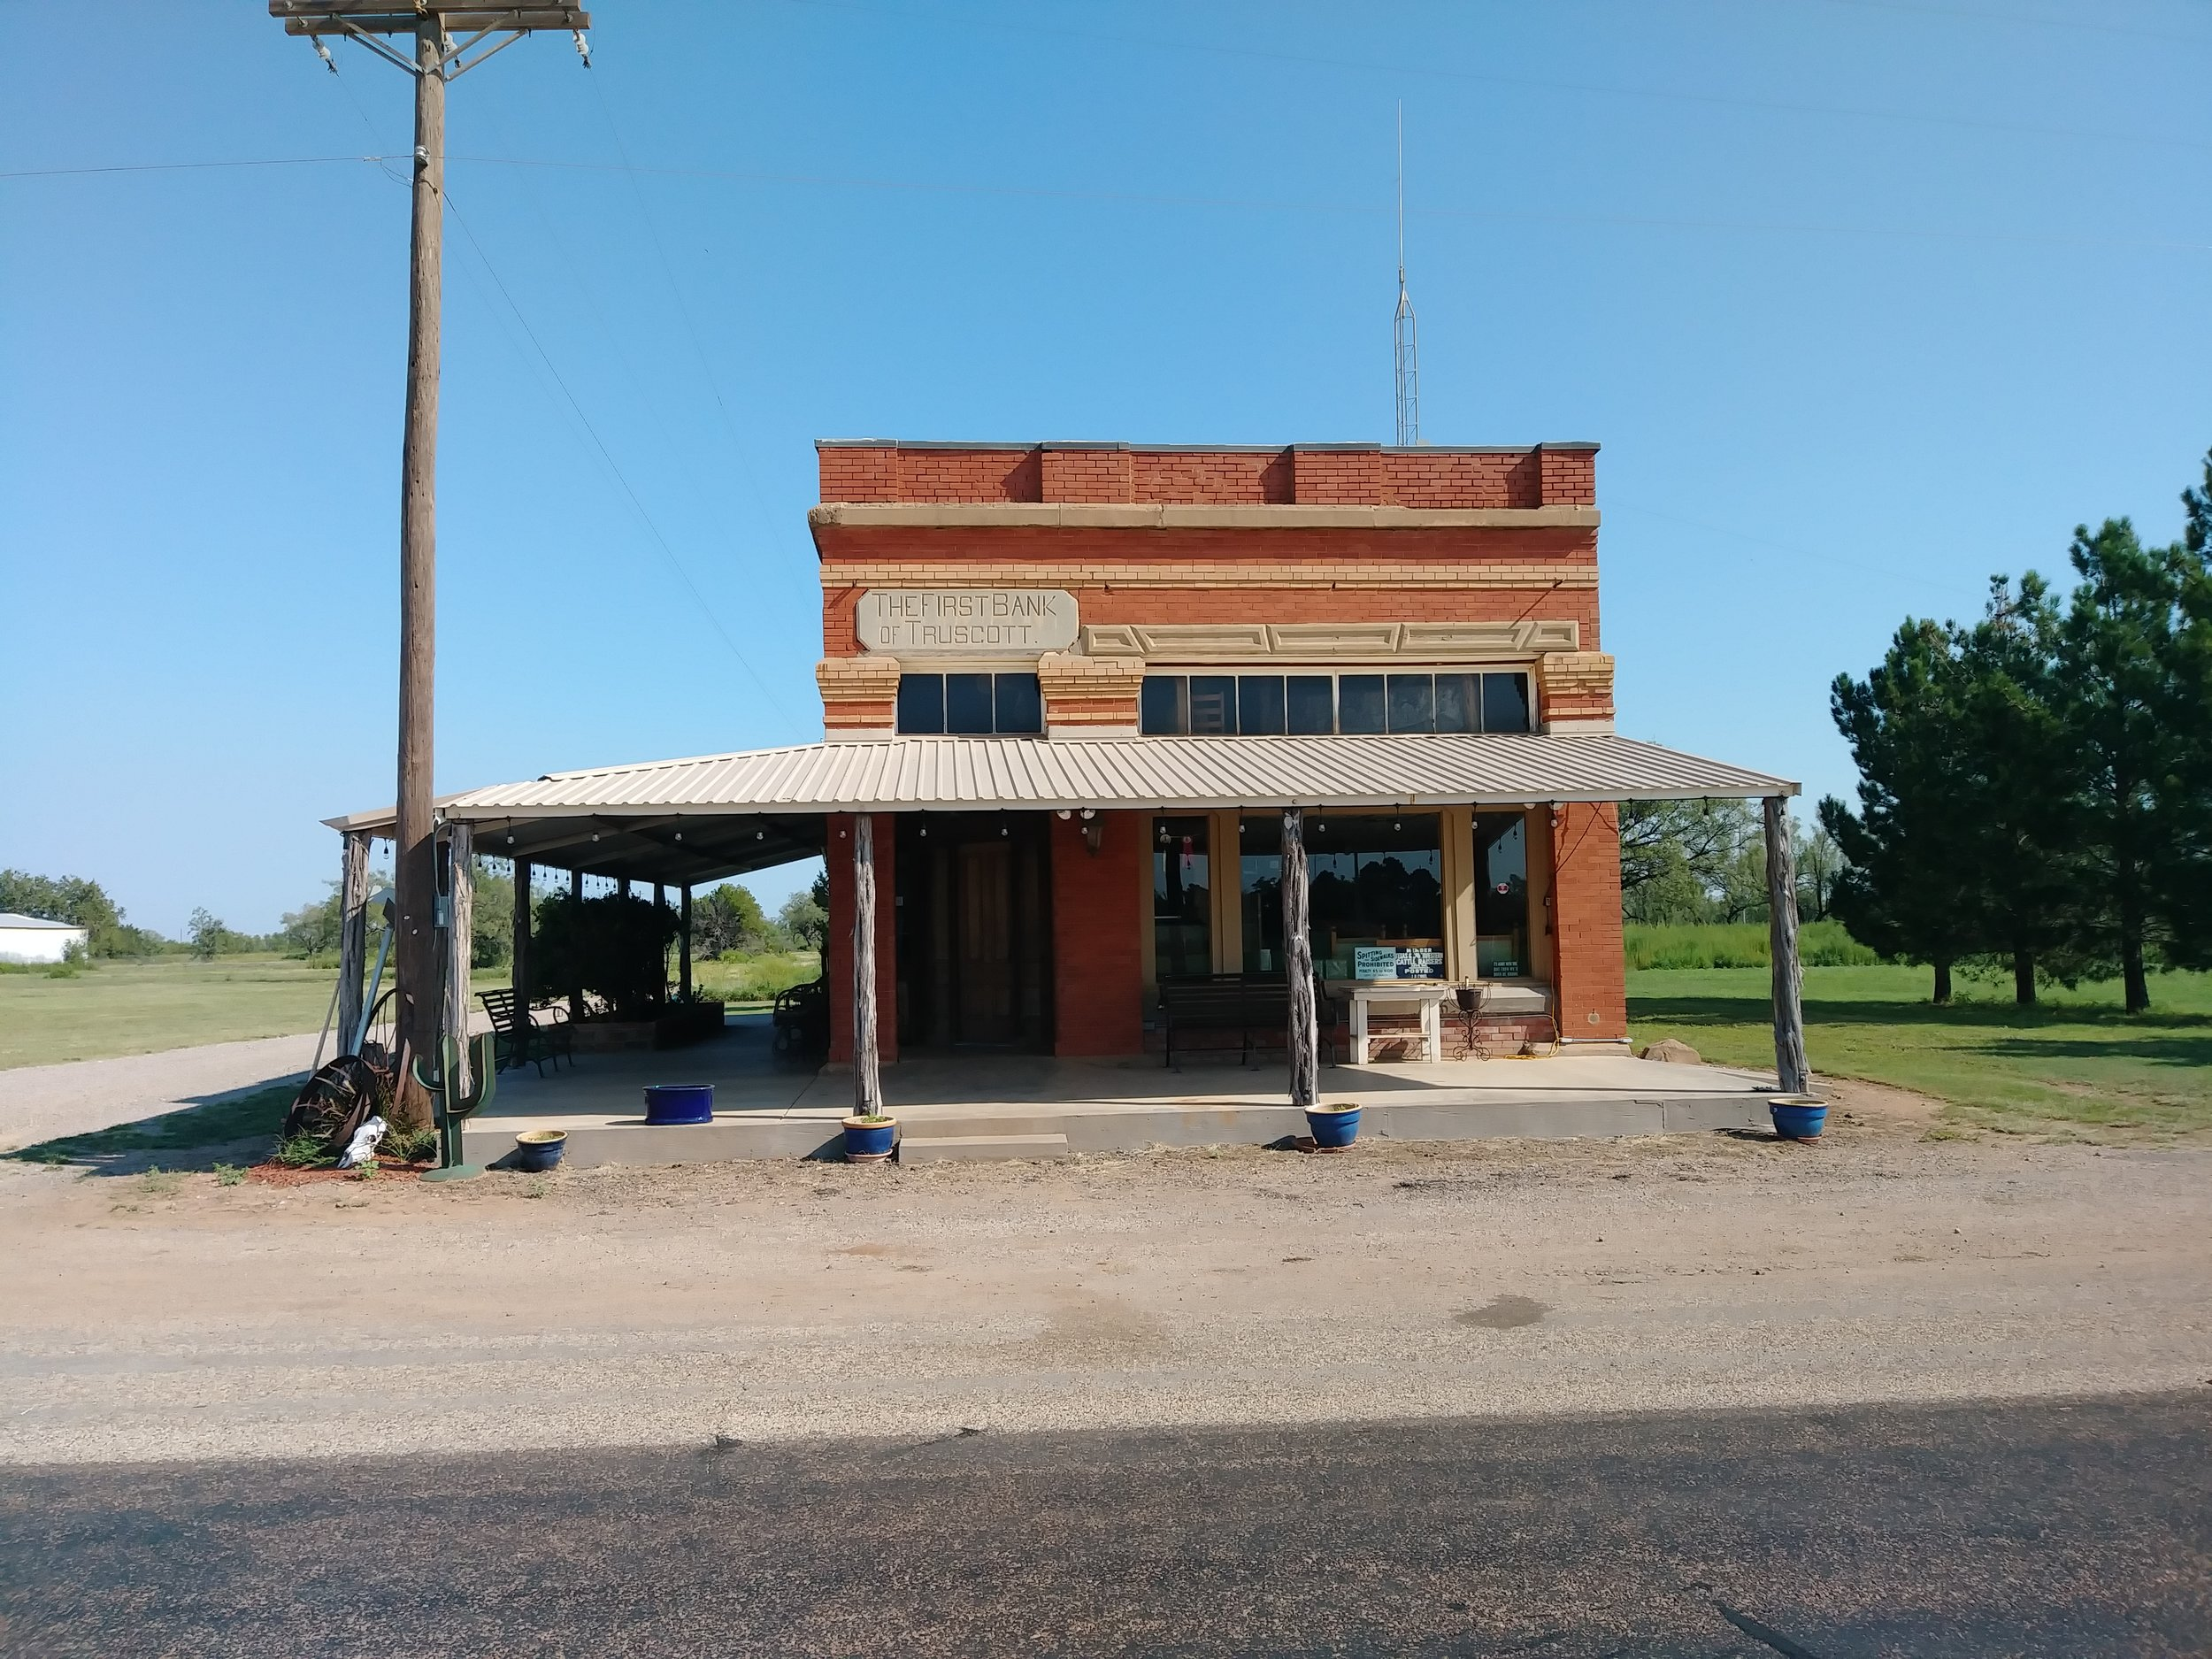 Circle Bar Ranch Bank Building Office and Ranch Business Head Quarters